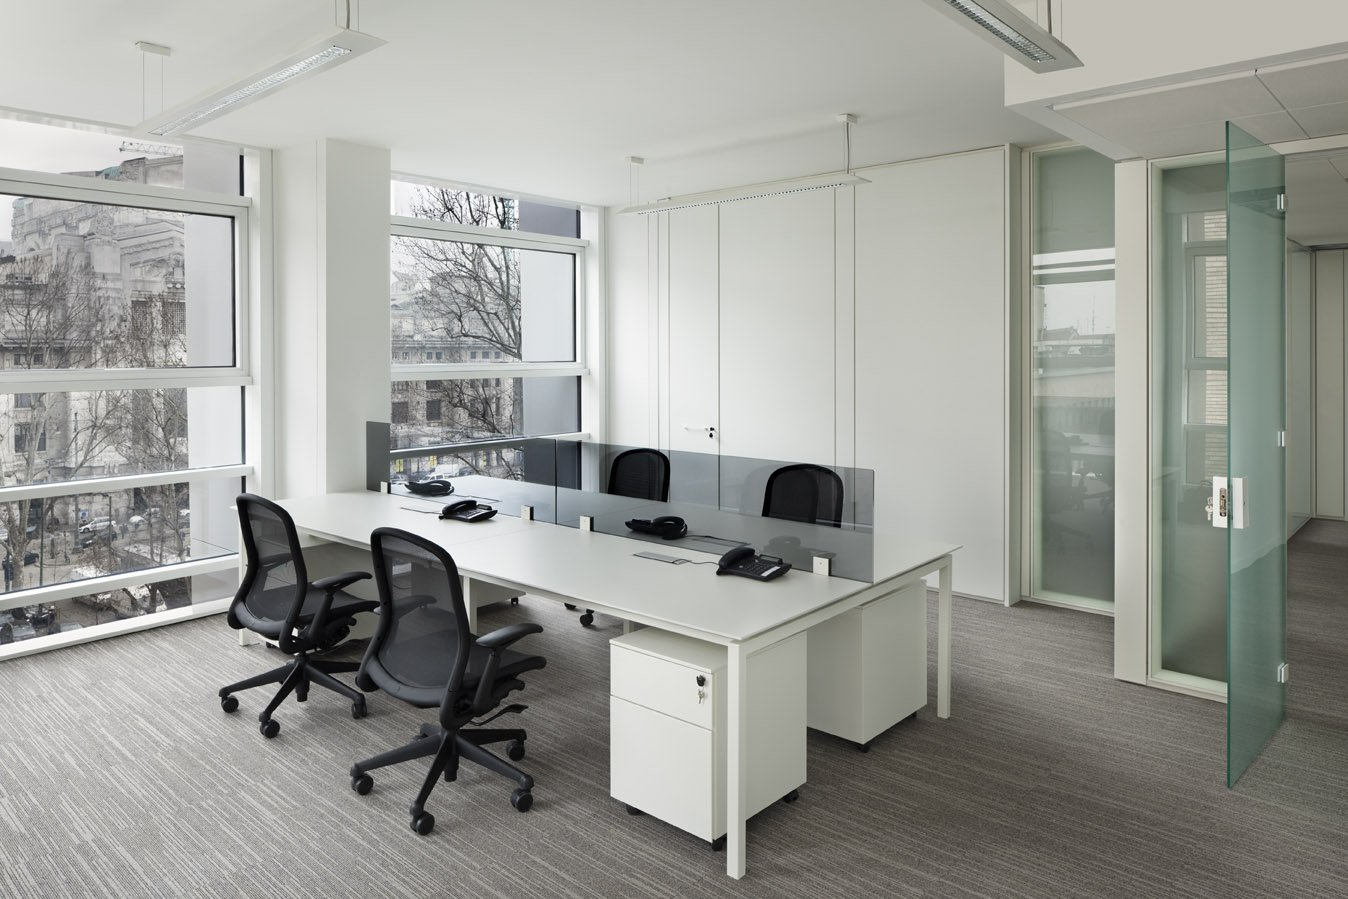 Meeting room and virtual office at italy eoffice business address meeting rooms conference - Office photo ...